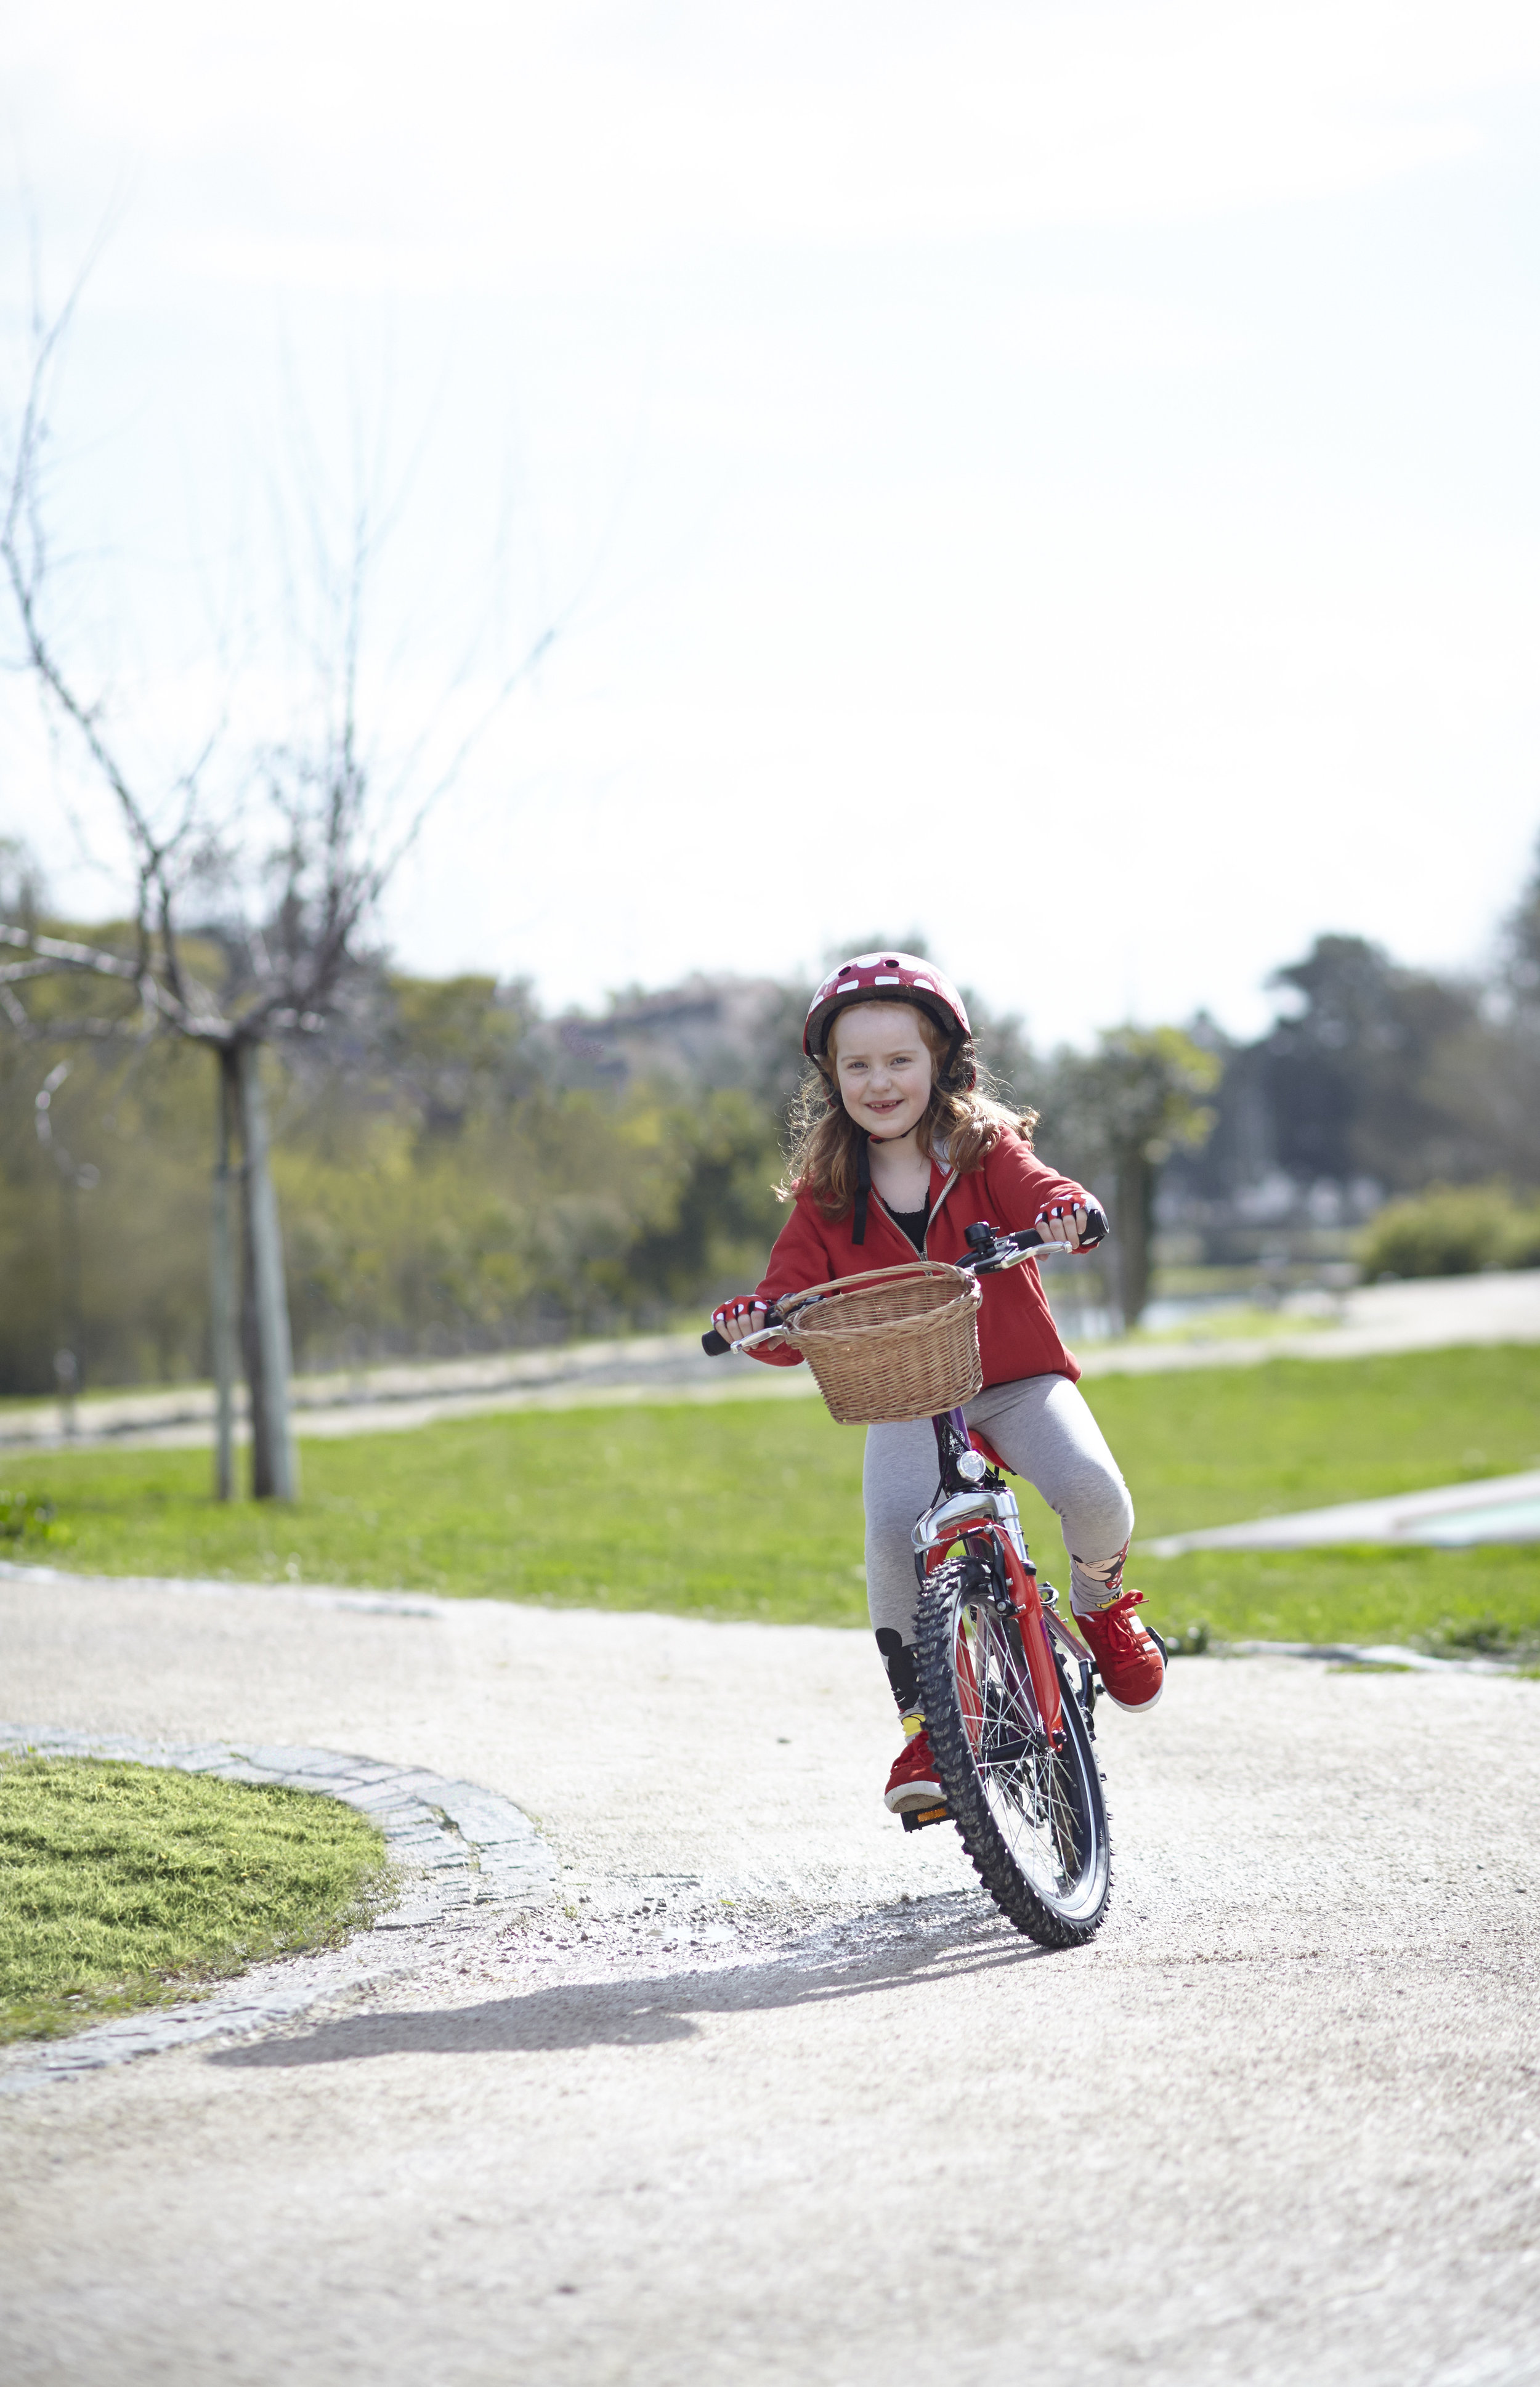 MickeyandFriends_Cycling_PublicityStills_29_master_Retouched.jpg